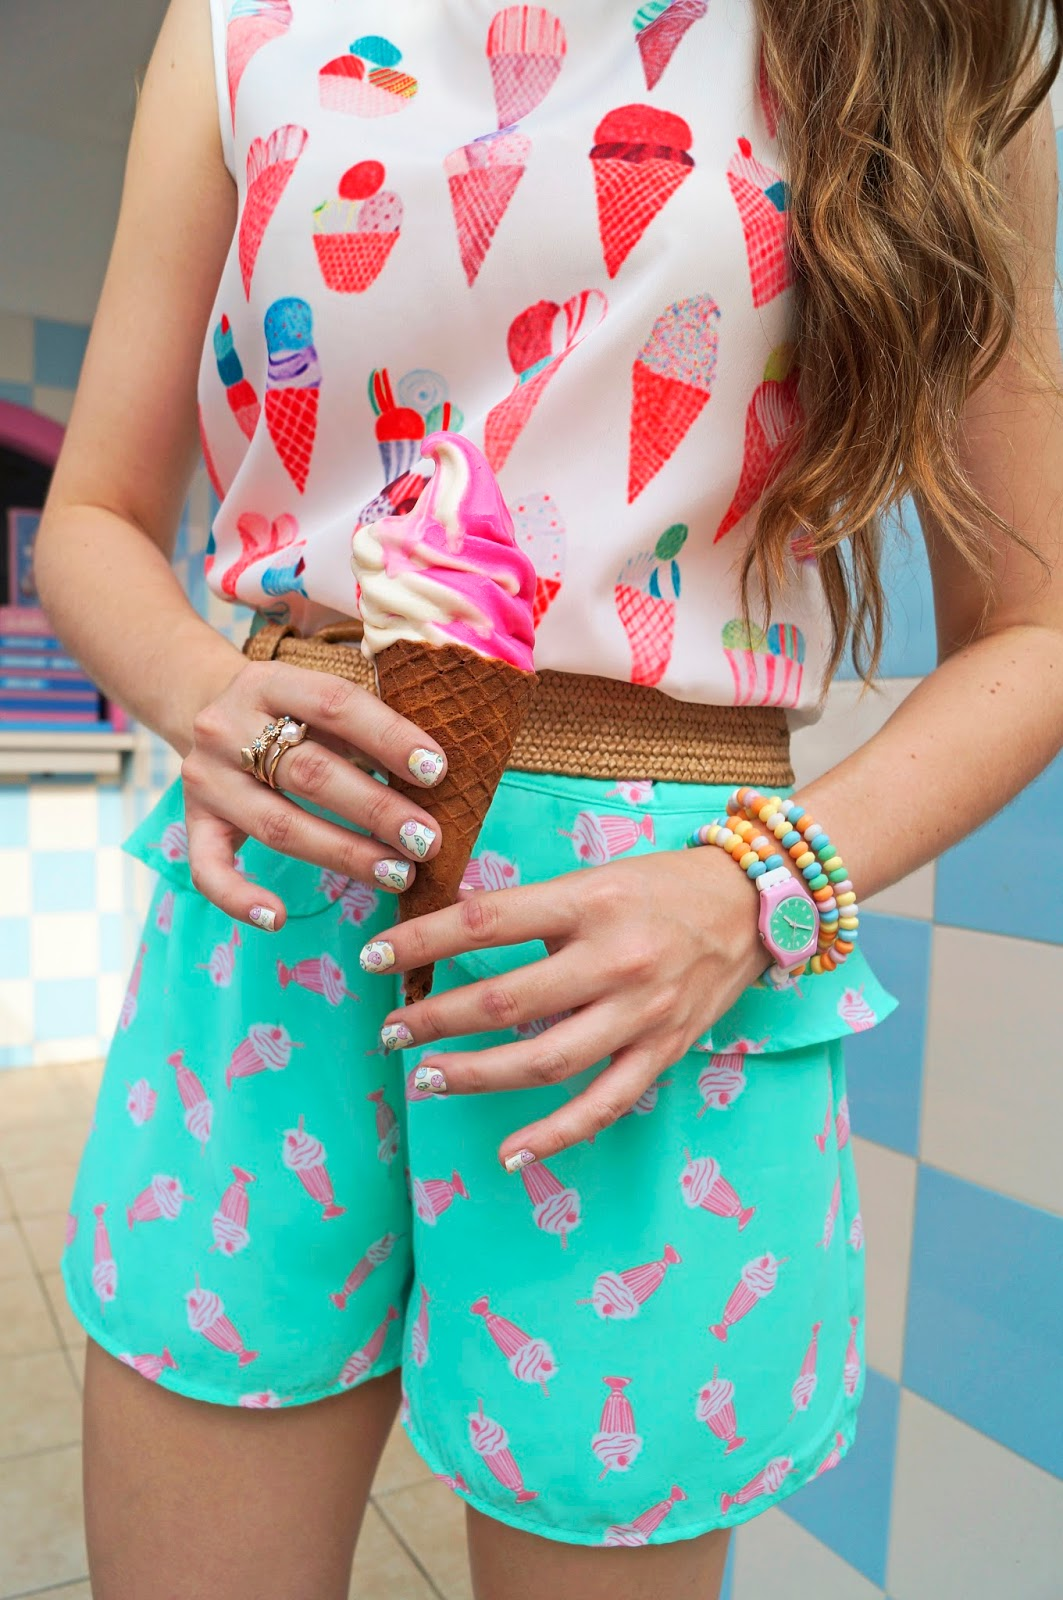 This outfit reminds me of Candyland!